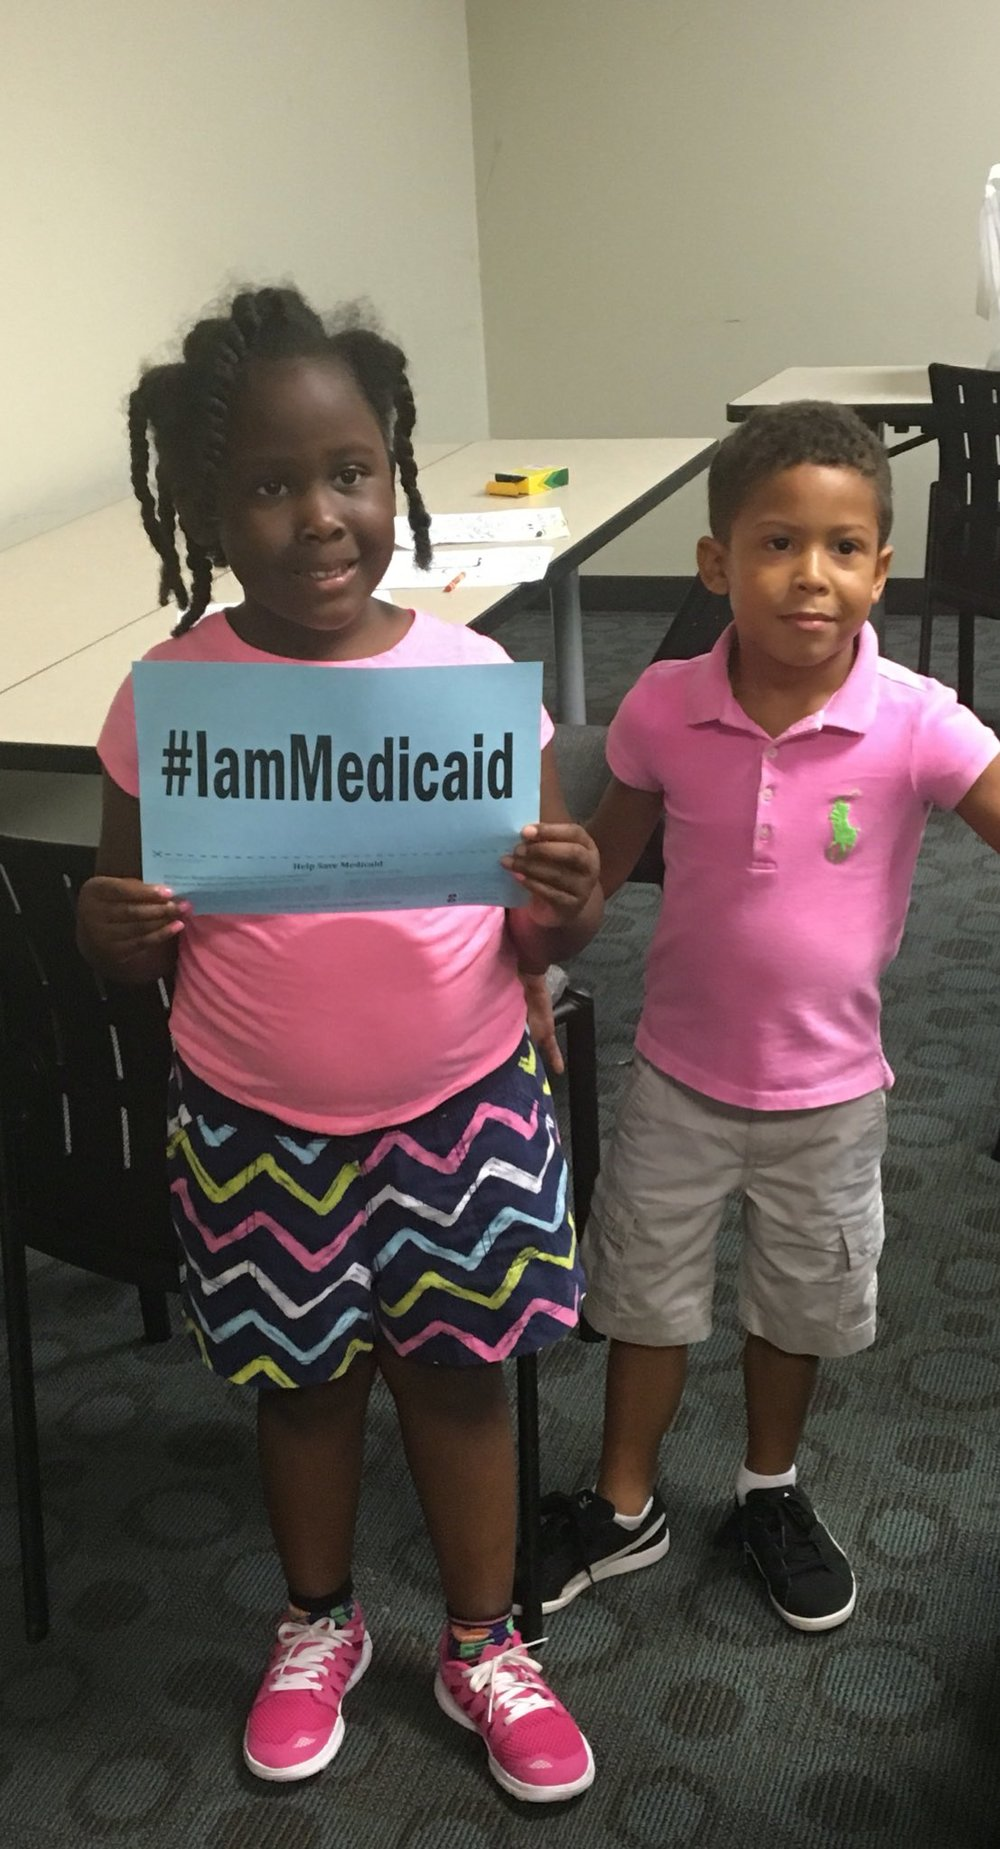 Most of the people covered by Medicaid are children. I am proud of AL's commitment to cover all kids. #IamMedicaid